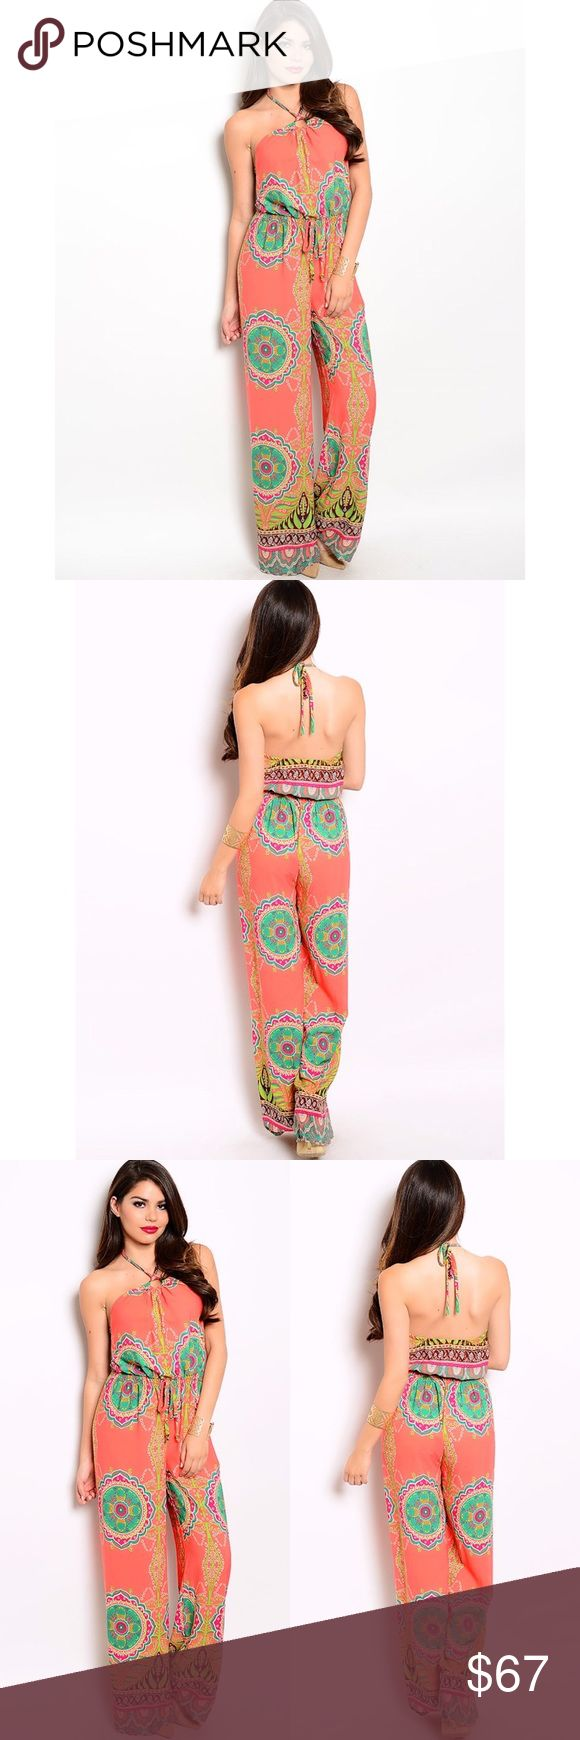 """ADRIENNE FLORALS JUMPSUIT CORAL GREEN BROWN JUMPSUITS This groovy jumpsuit channels 70s vibe with its wide-legged fit and colorful print. Strappy halter detail.   Country: USA Fabric Content: 100% POLYESTER  Description: L: 61"""" B: 16"""" W: 10"""" Other"""